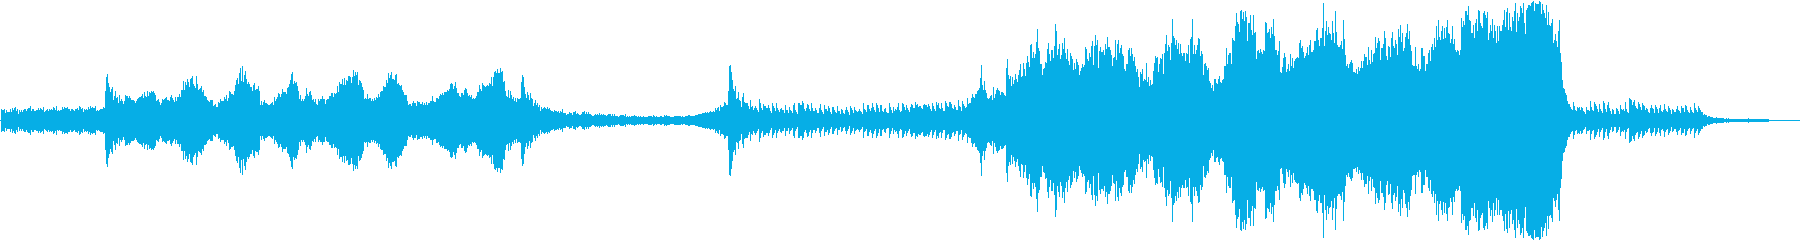 Cold Lake's reproduced waveform